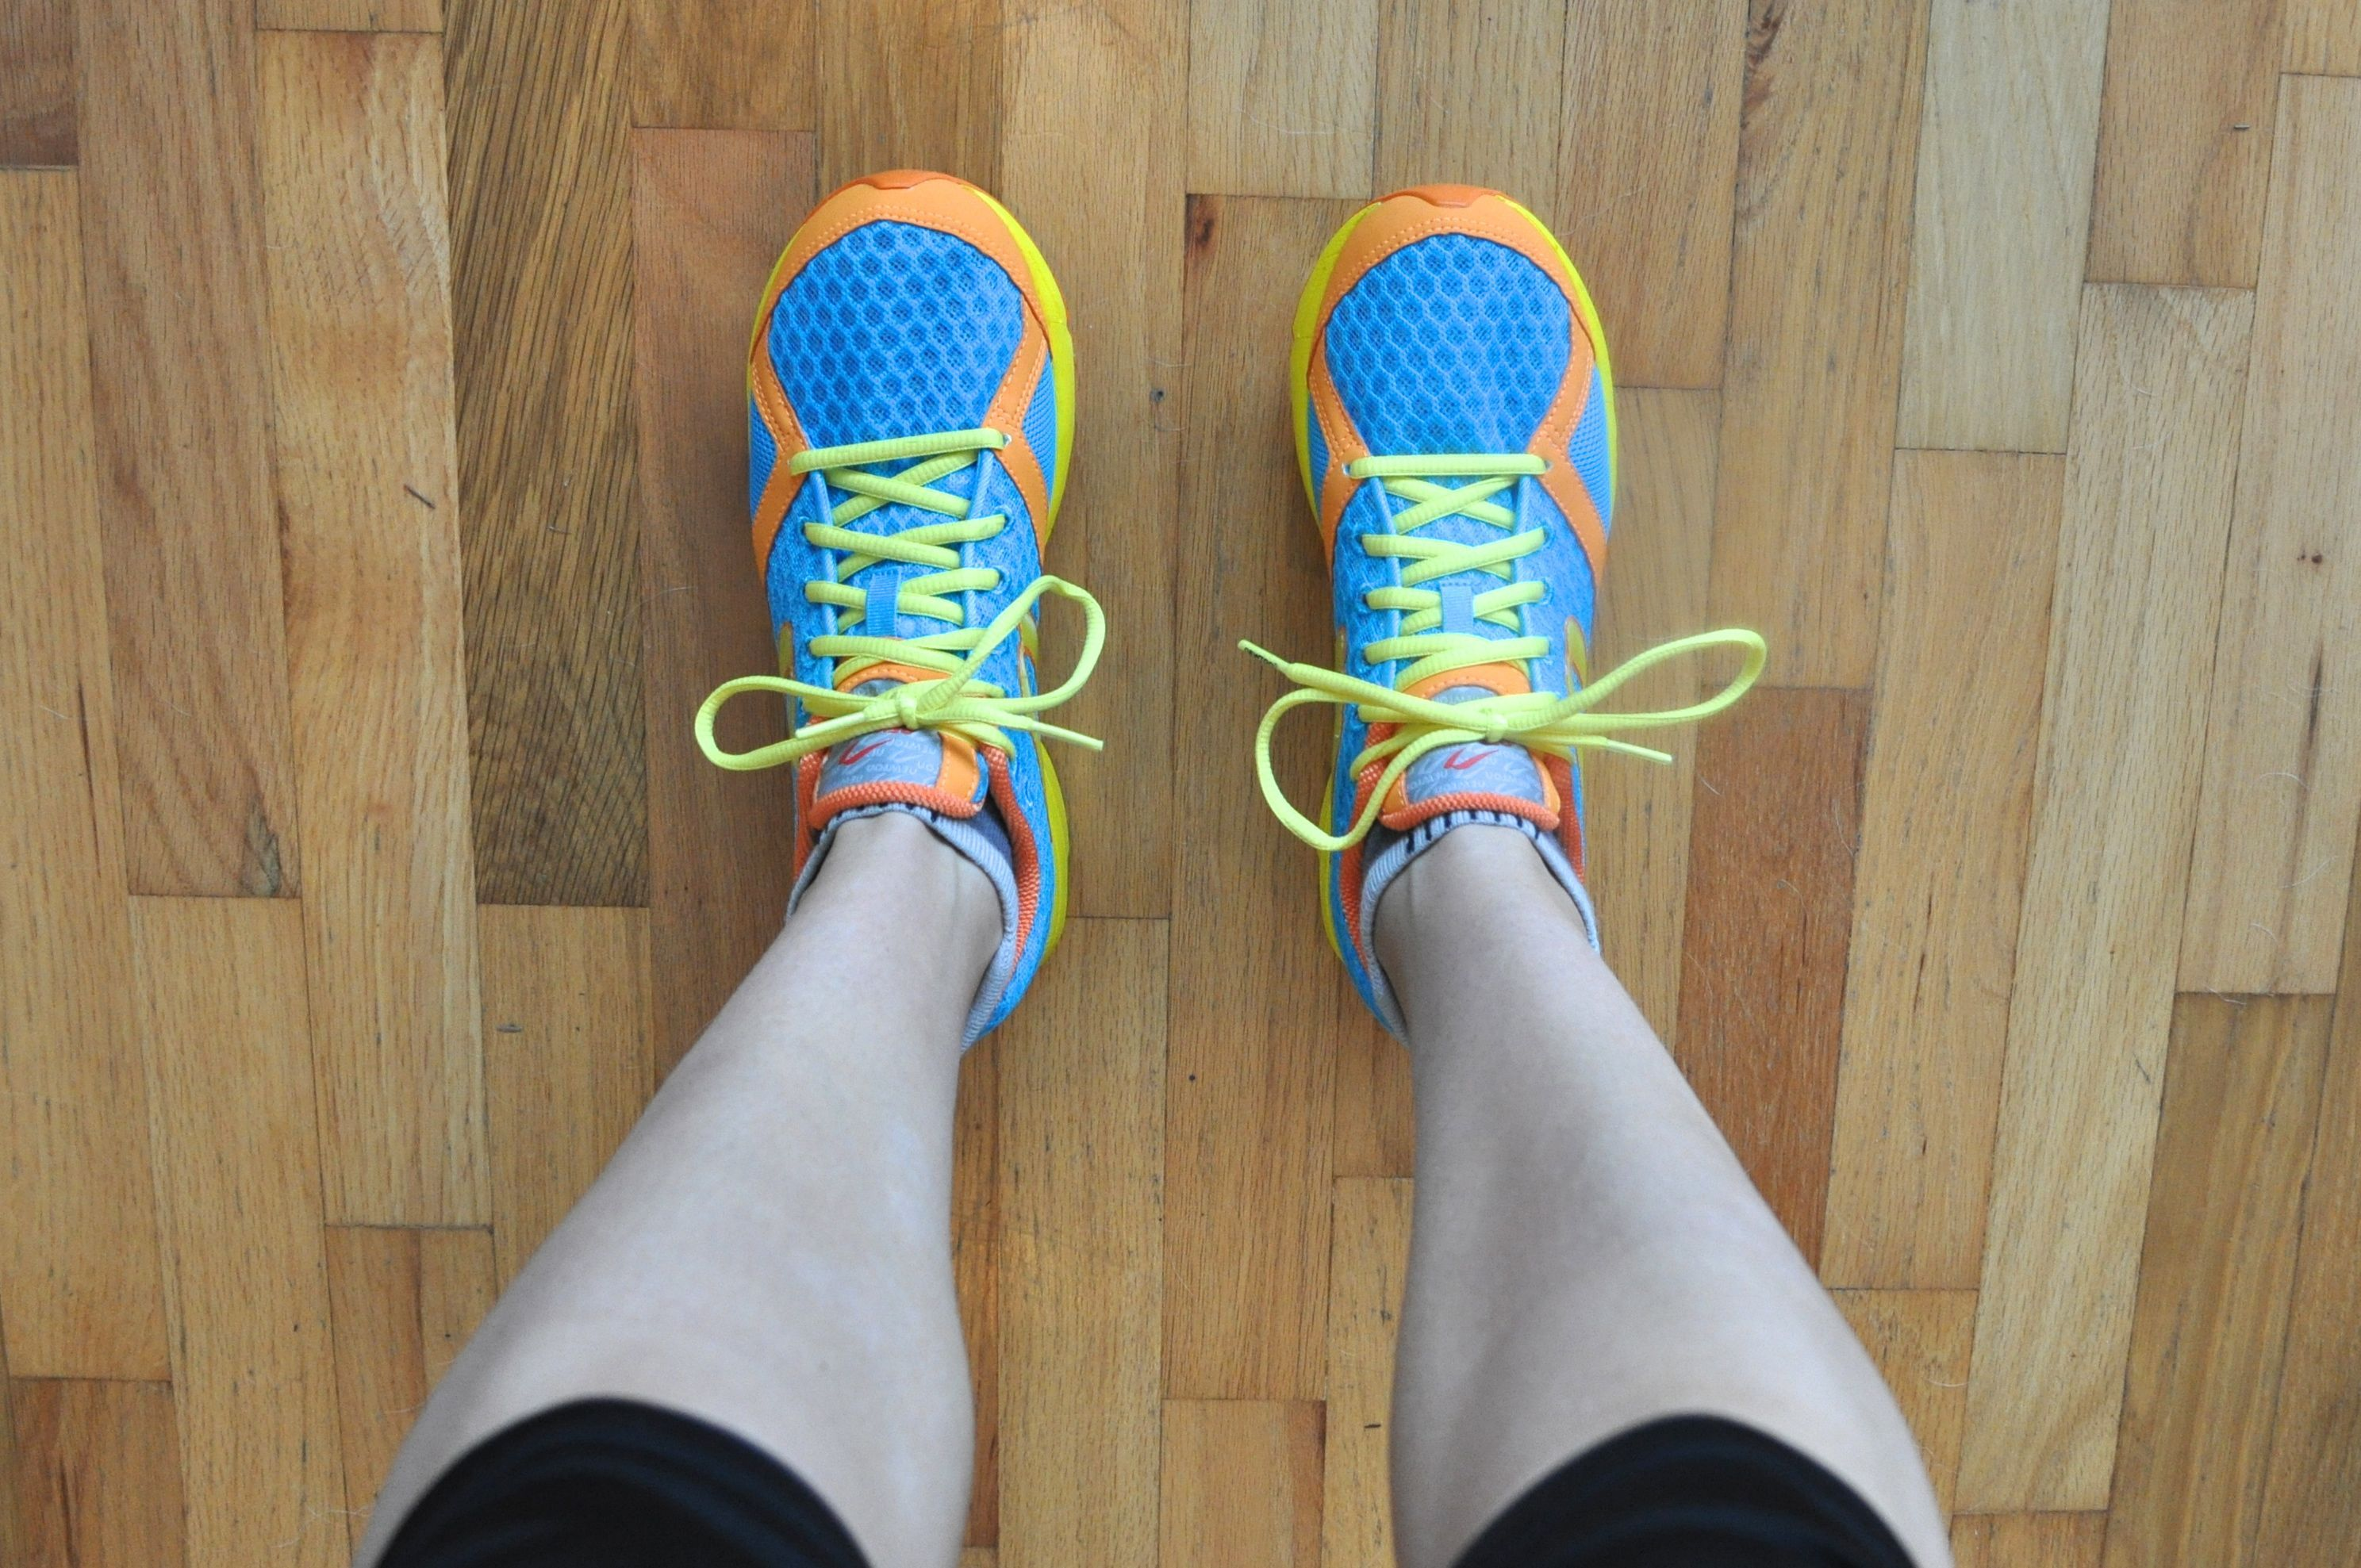 wide toe box shoes - Google Search